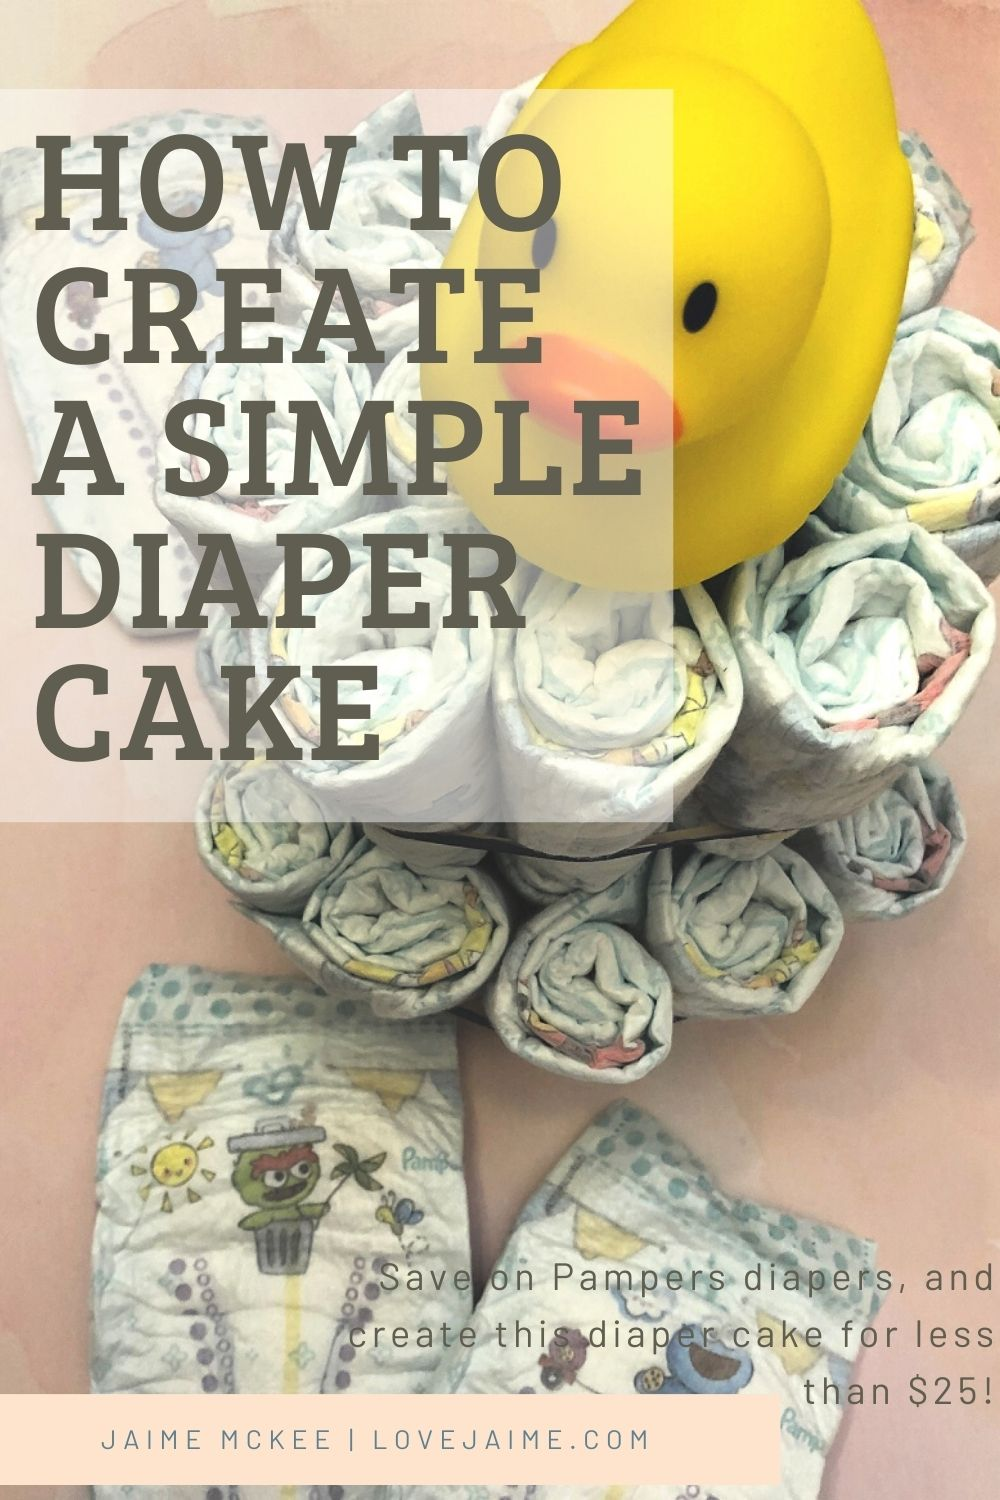 How to create a diaper cake - it's easy and you can stay within a very reasonable budget (under $25!)